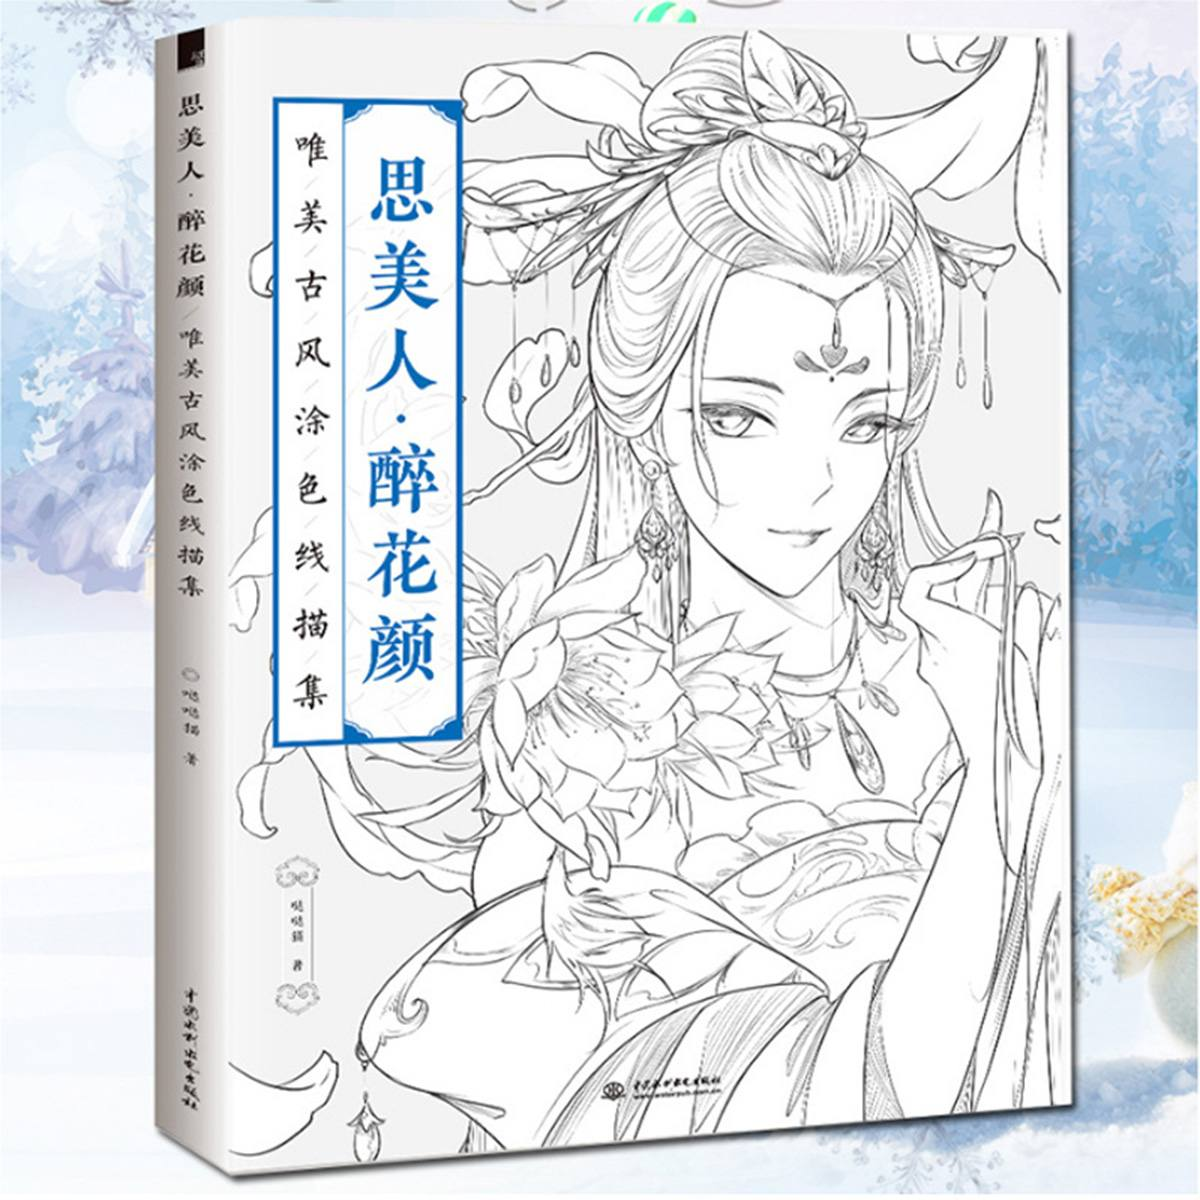 Colouring Line Drawing Book Chinese Coloring Books Adults Kids Classical Ancient Beauty Relaxation Anti Stress Japanese Art Book